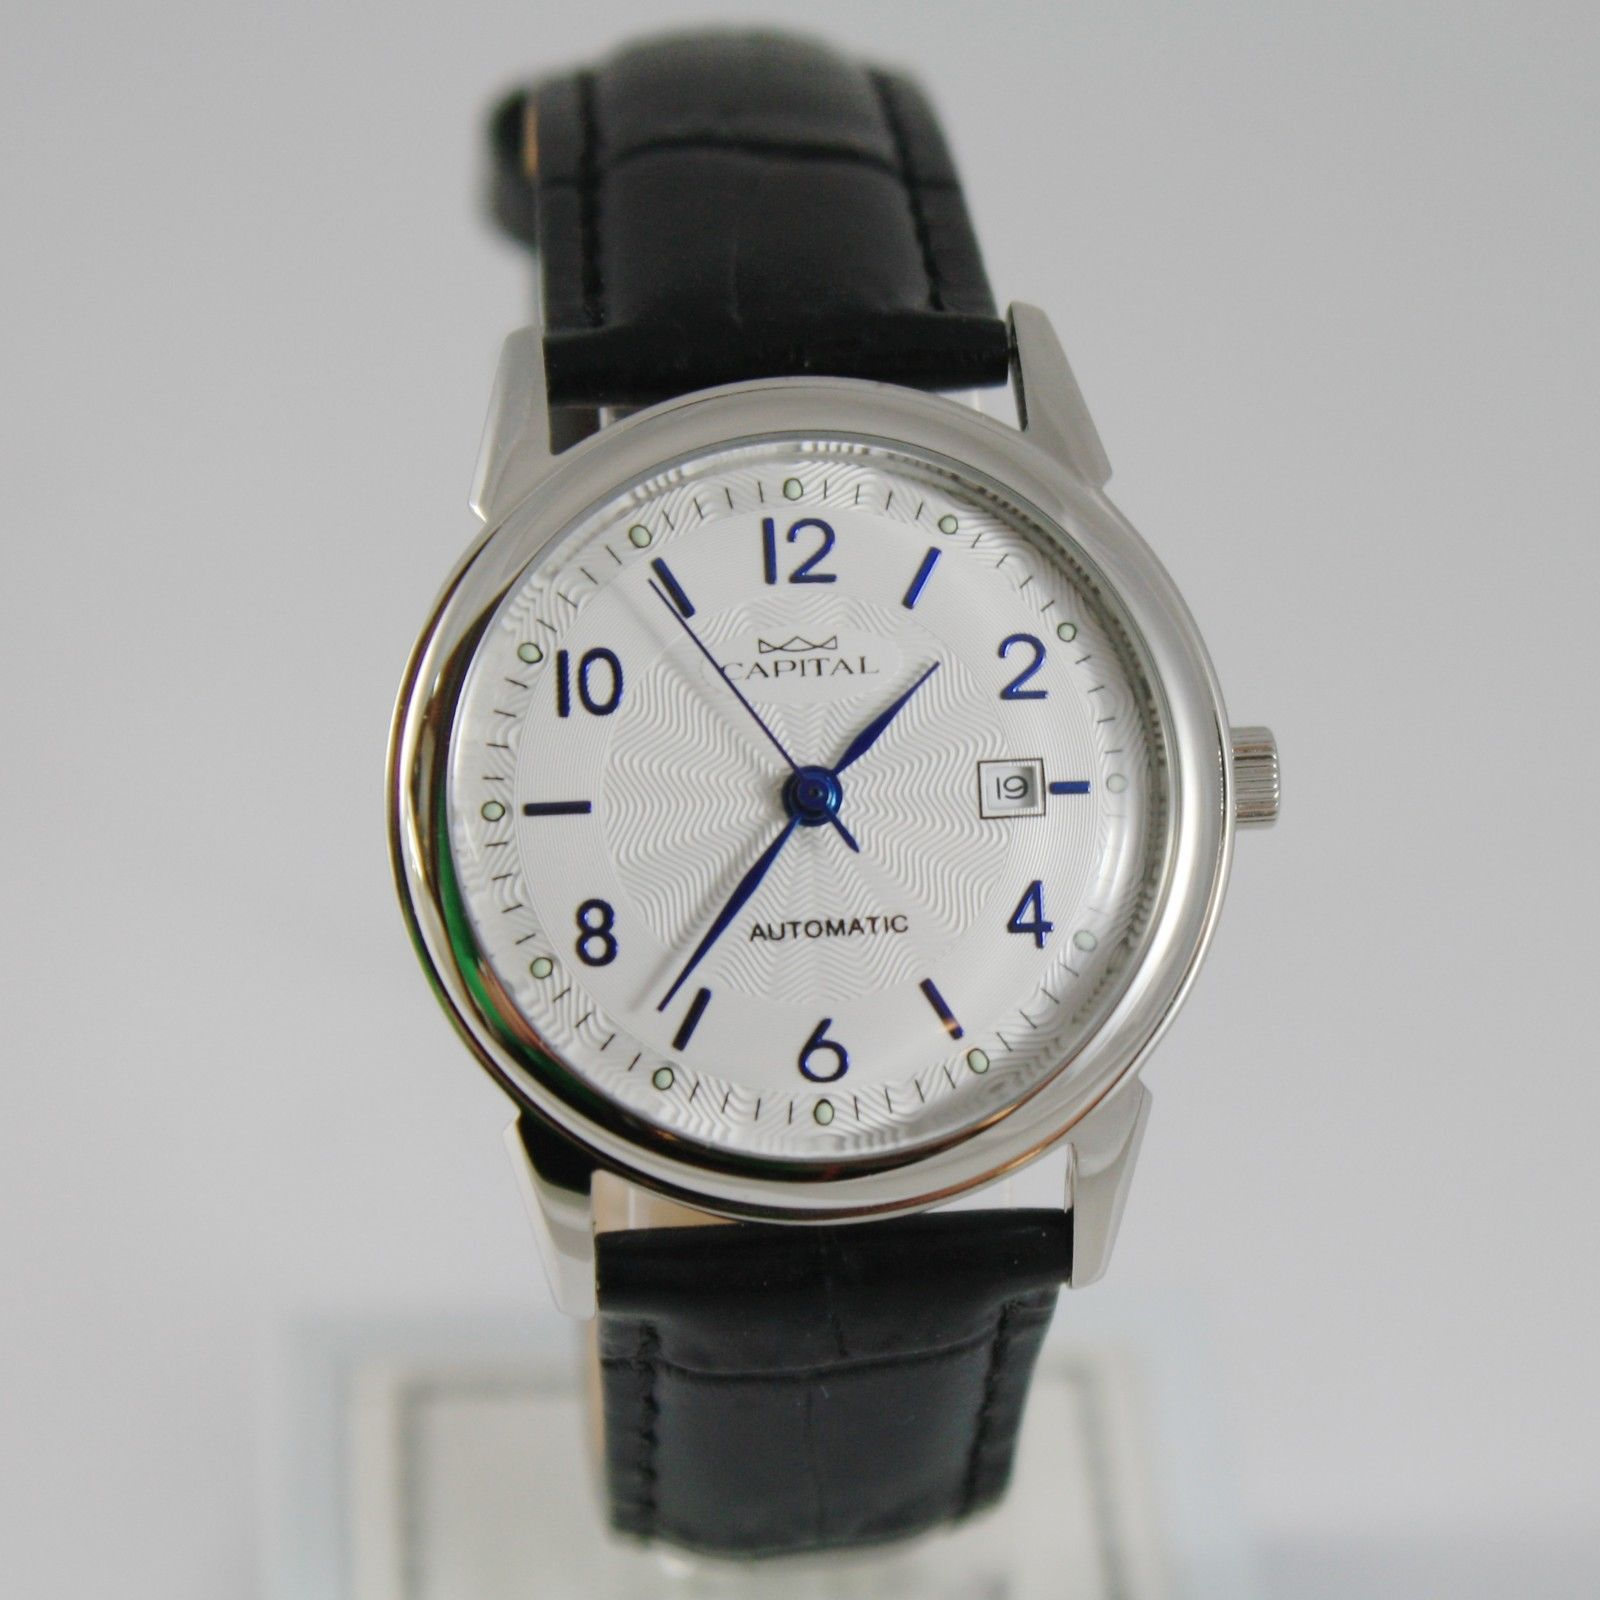 CAPITAL WATCH AUTOMATIC MOVEMENT 32 MM CASE WITH DATE, VINTAGE, retrò style